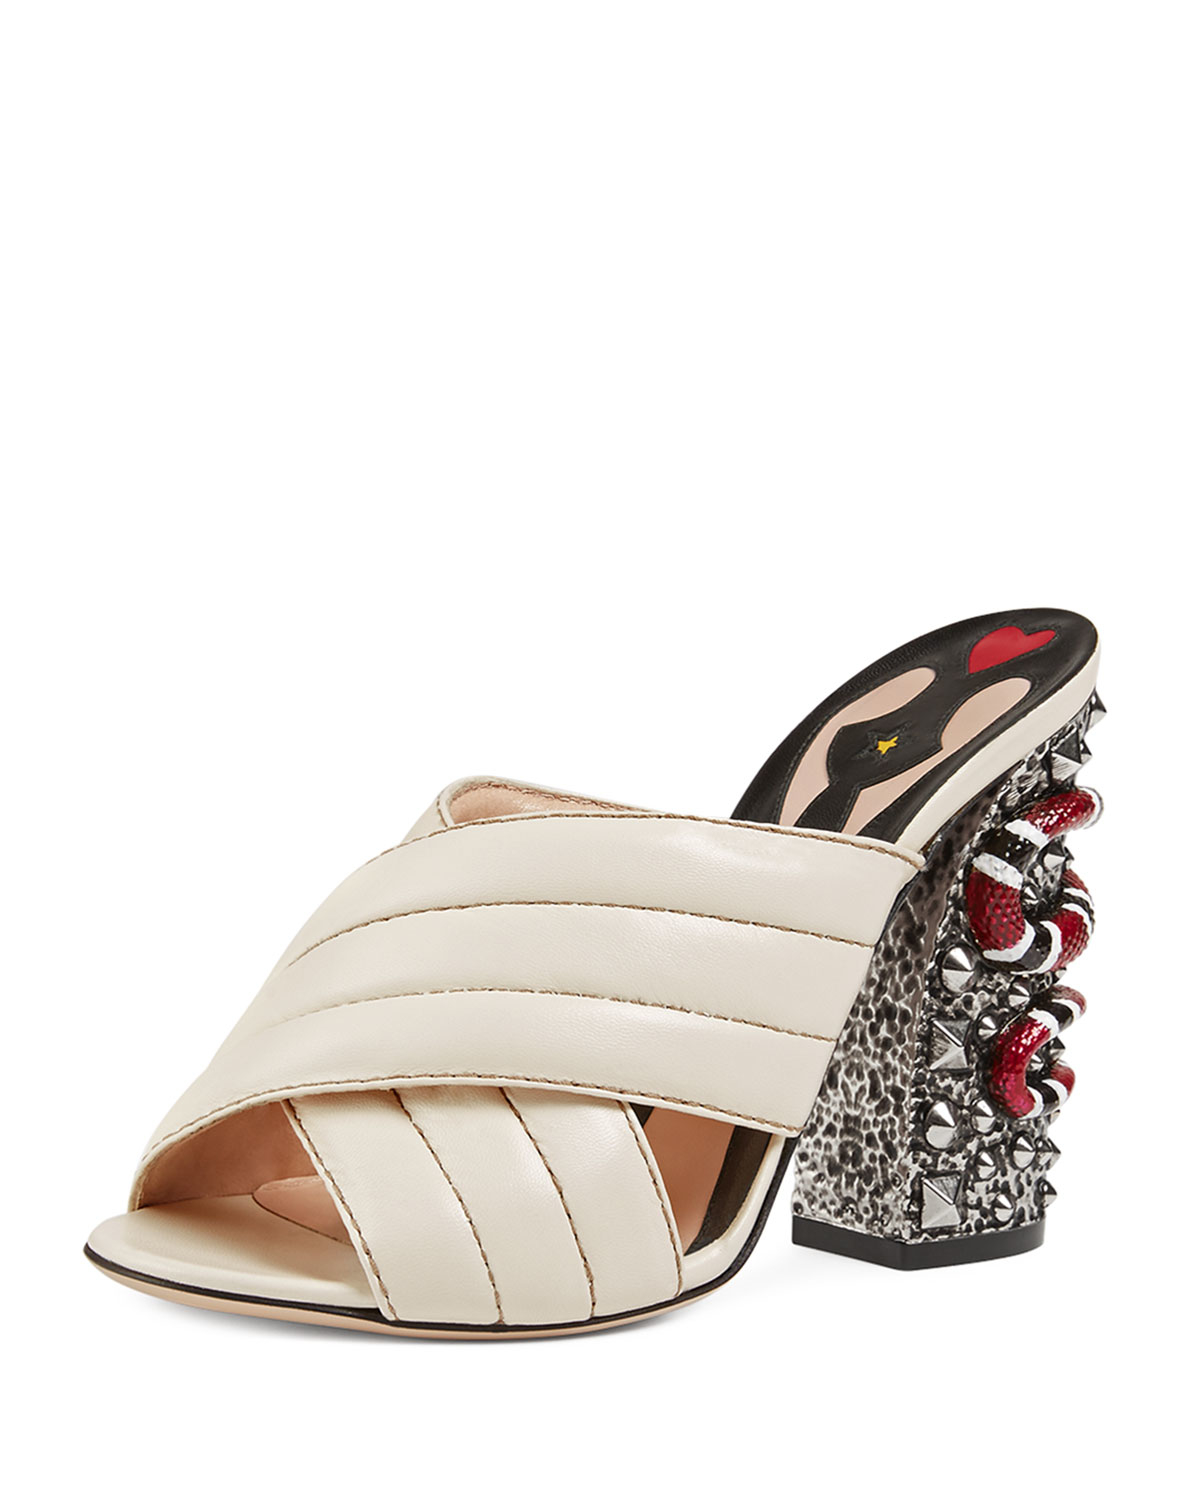 1147d69fad4 Lyst - Gucci Webby Quilted Leather Snake-heel Mule Sandal in Natural